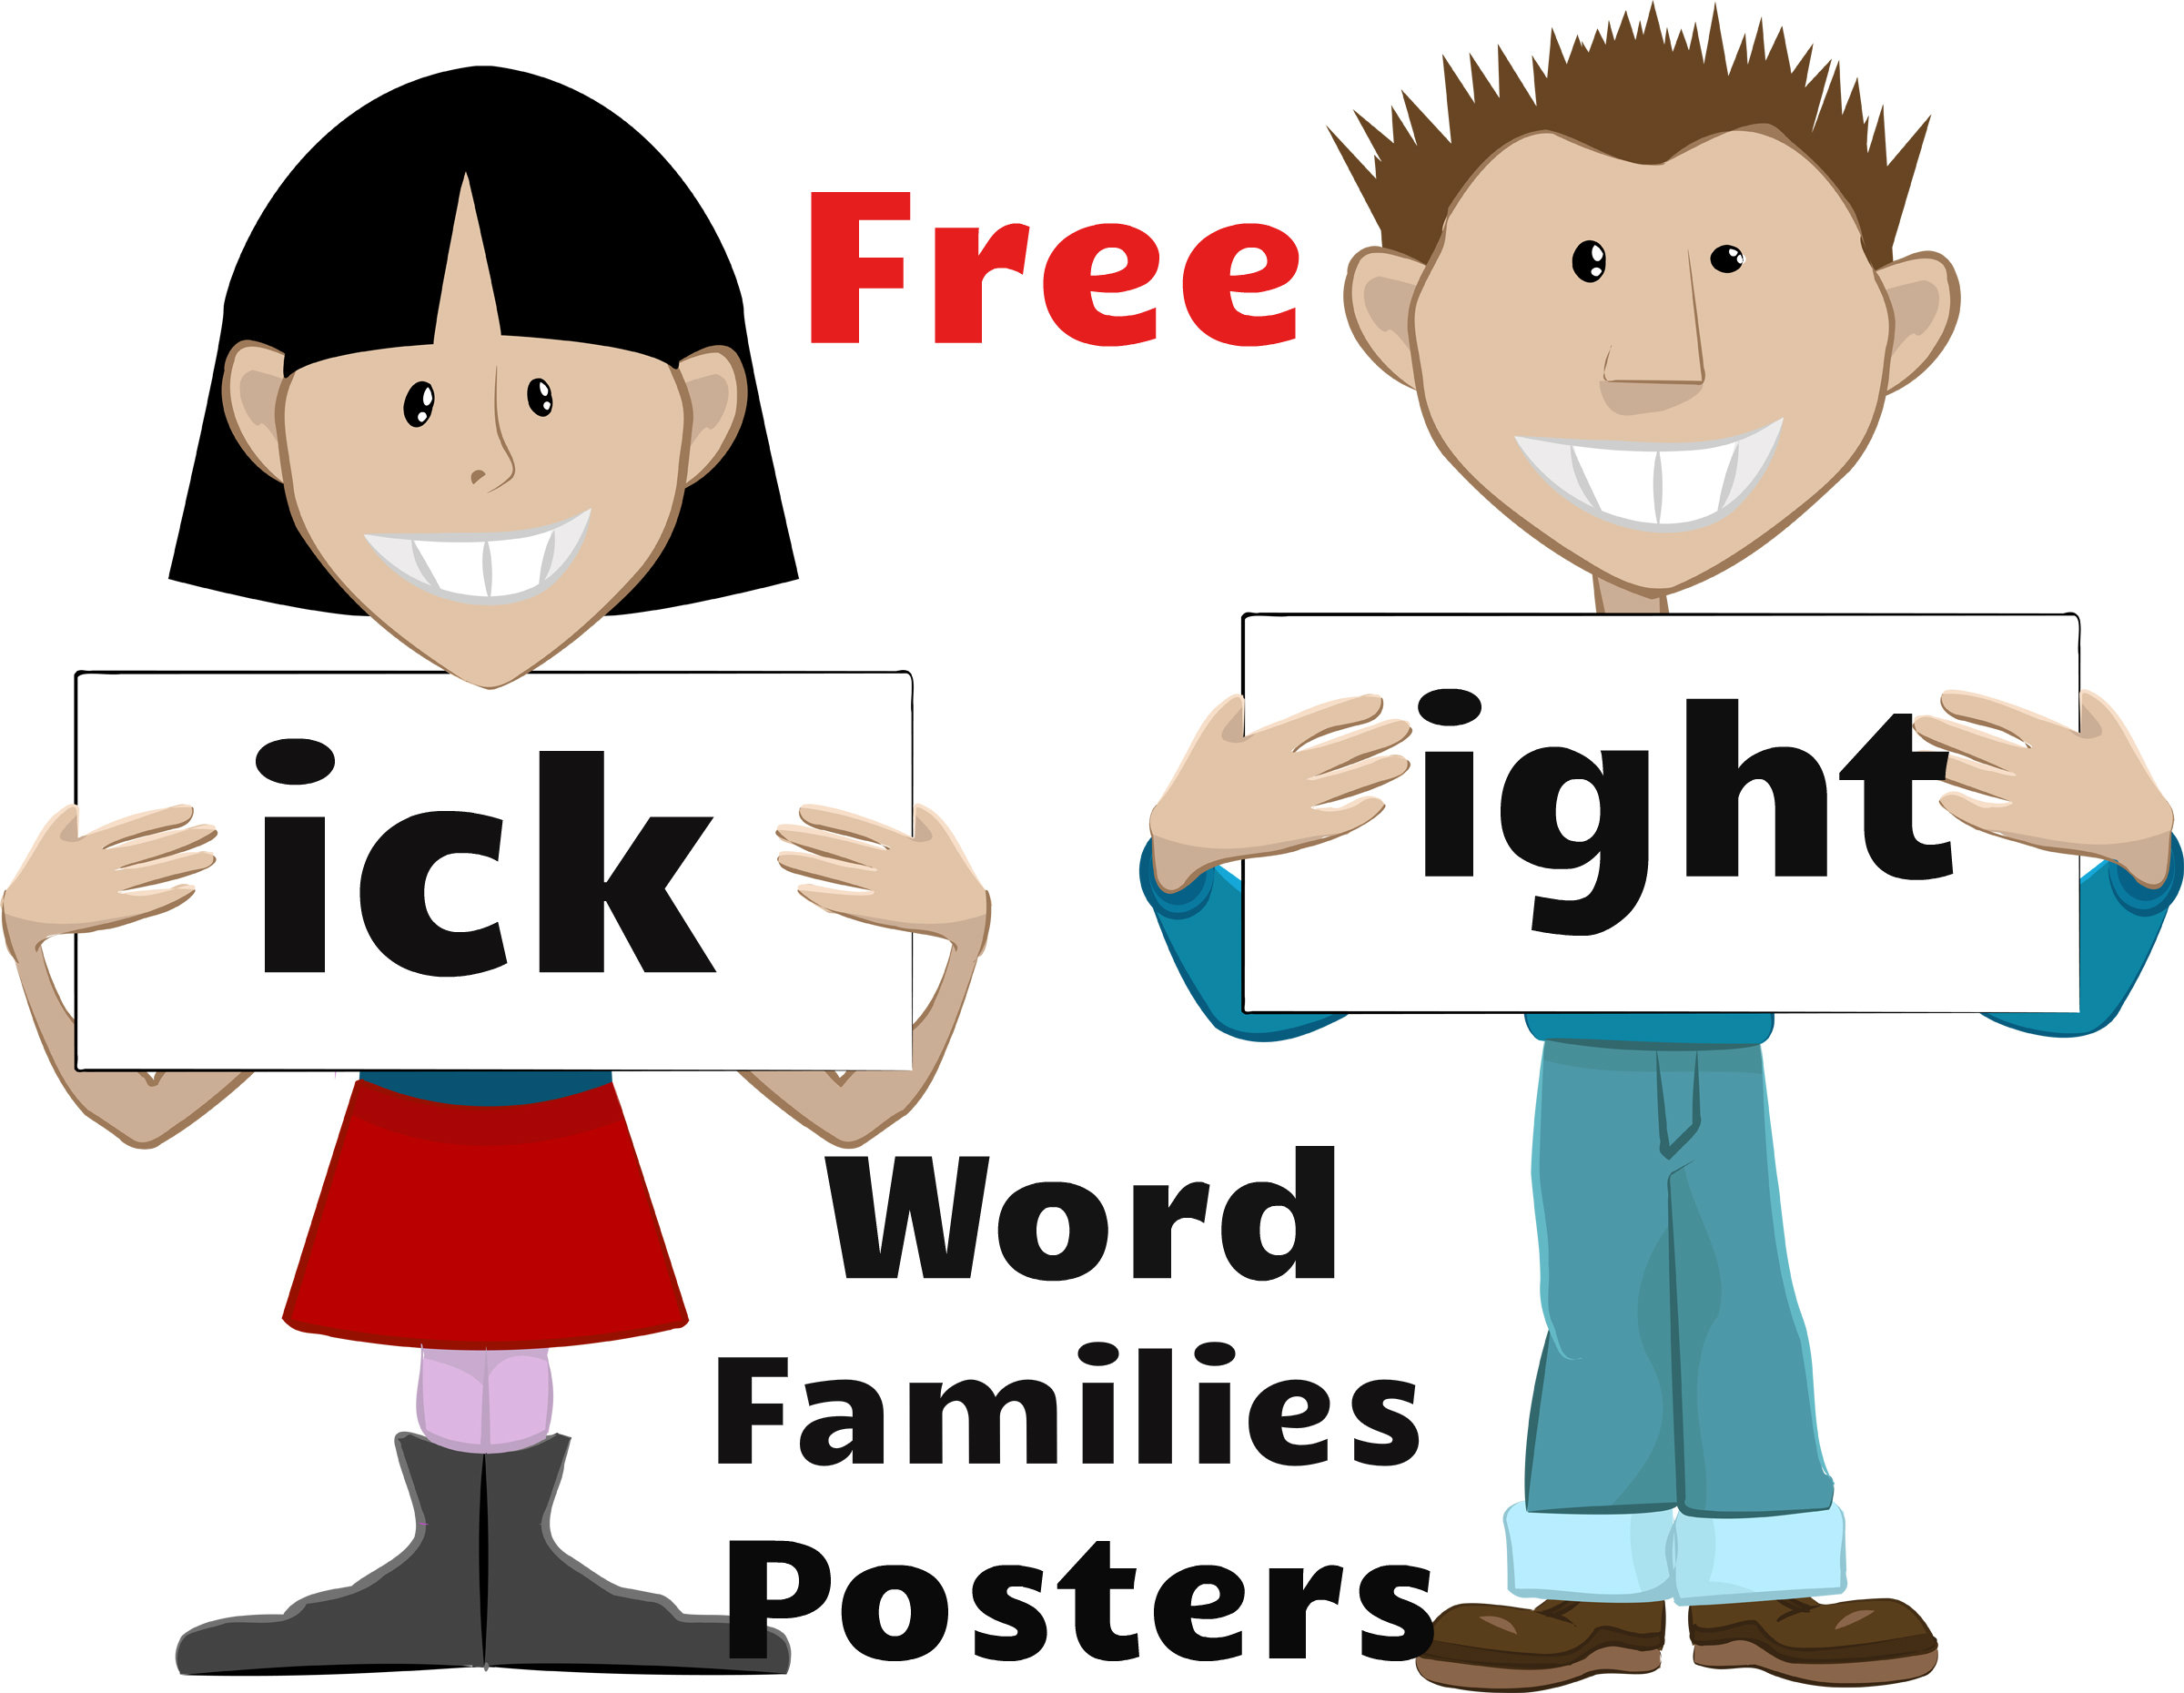 Free word families posters.